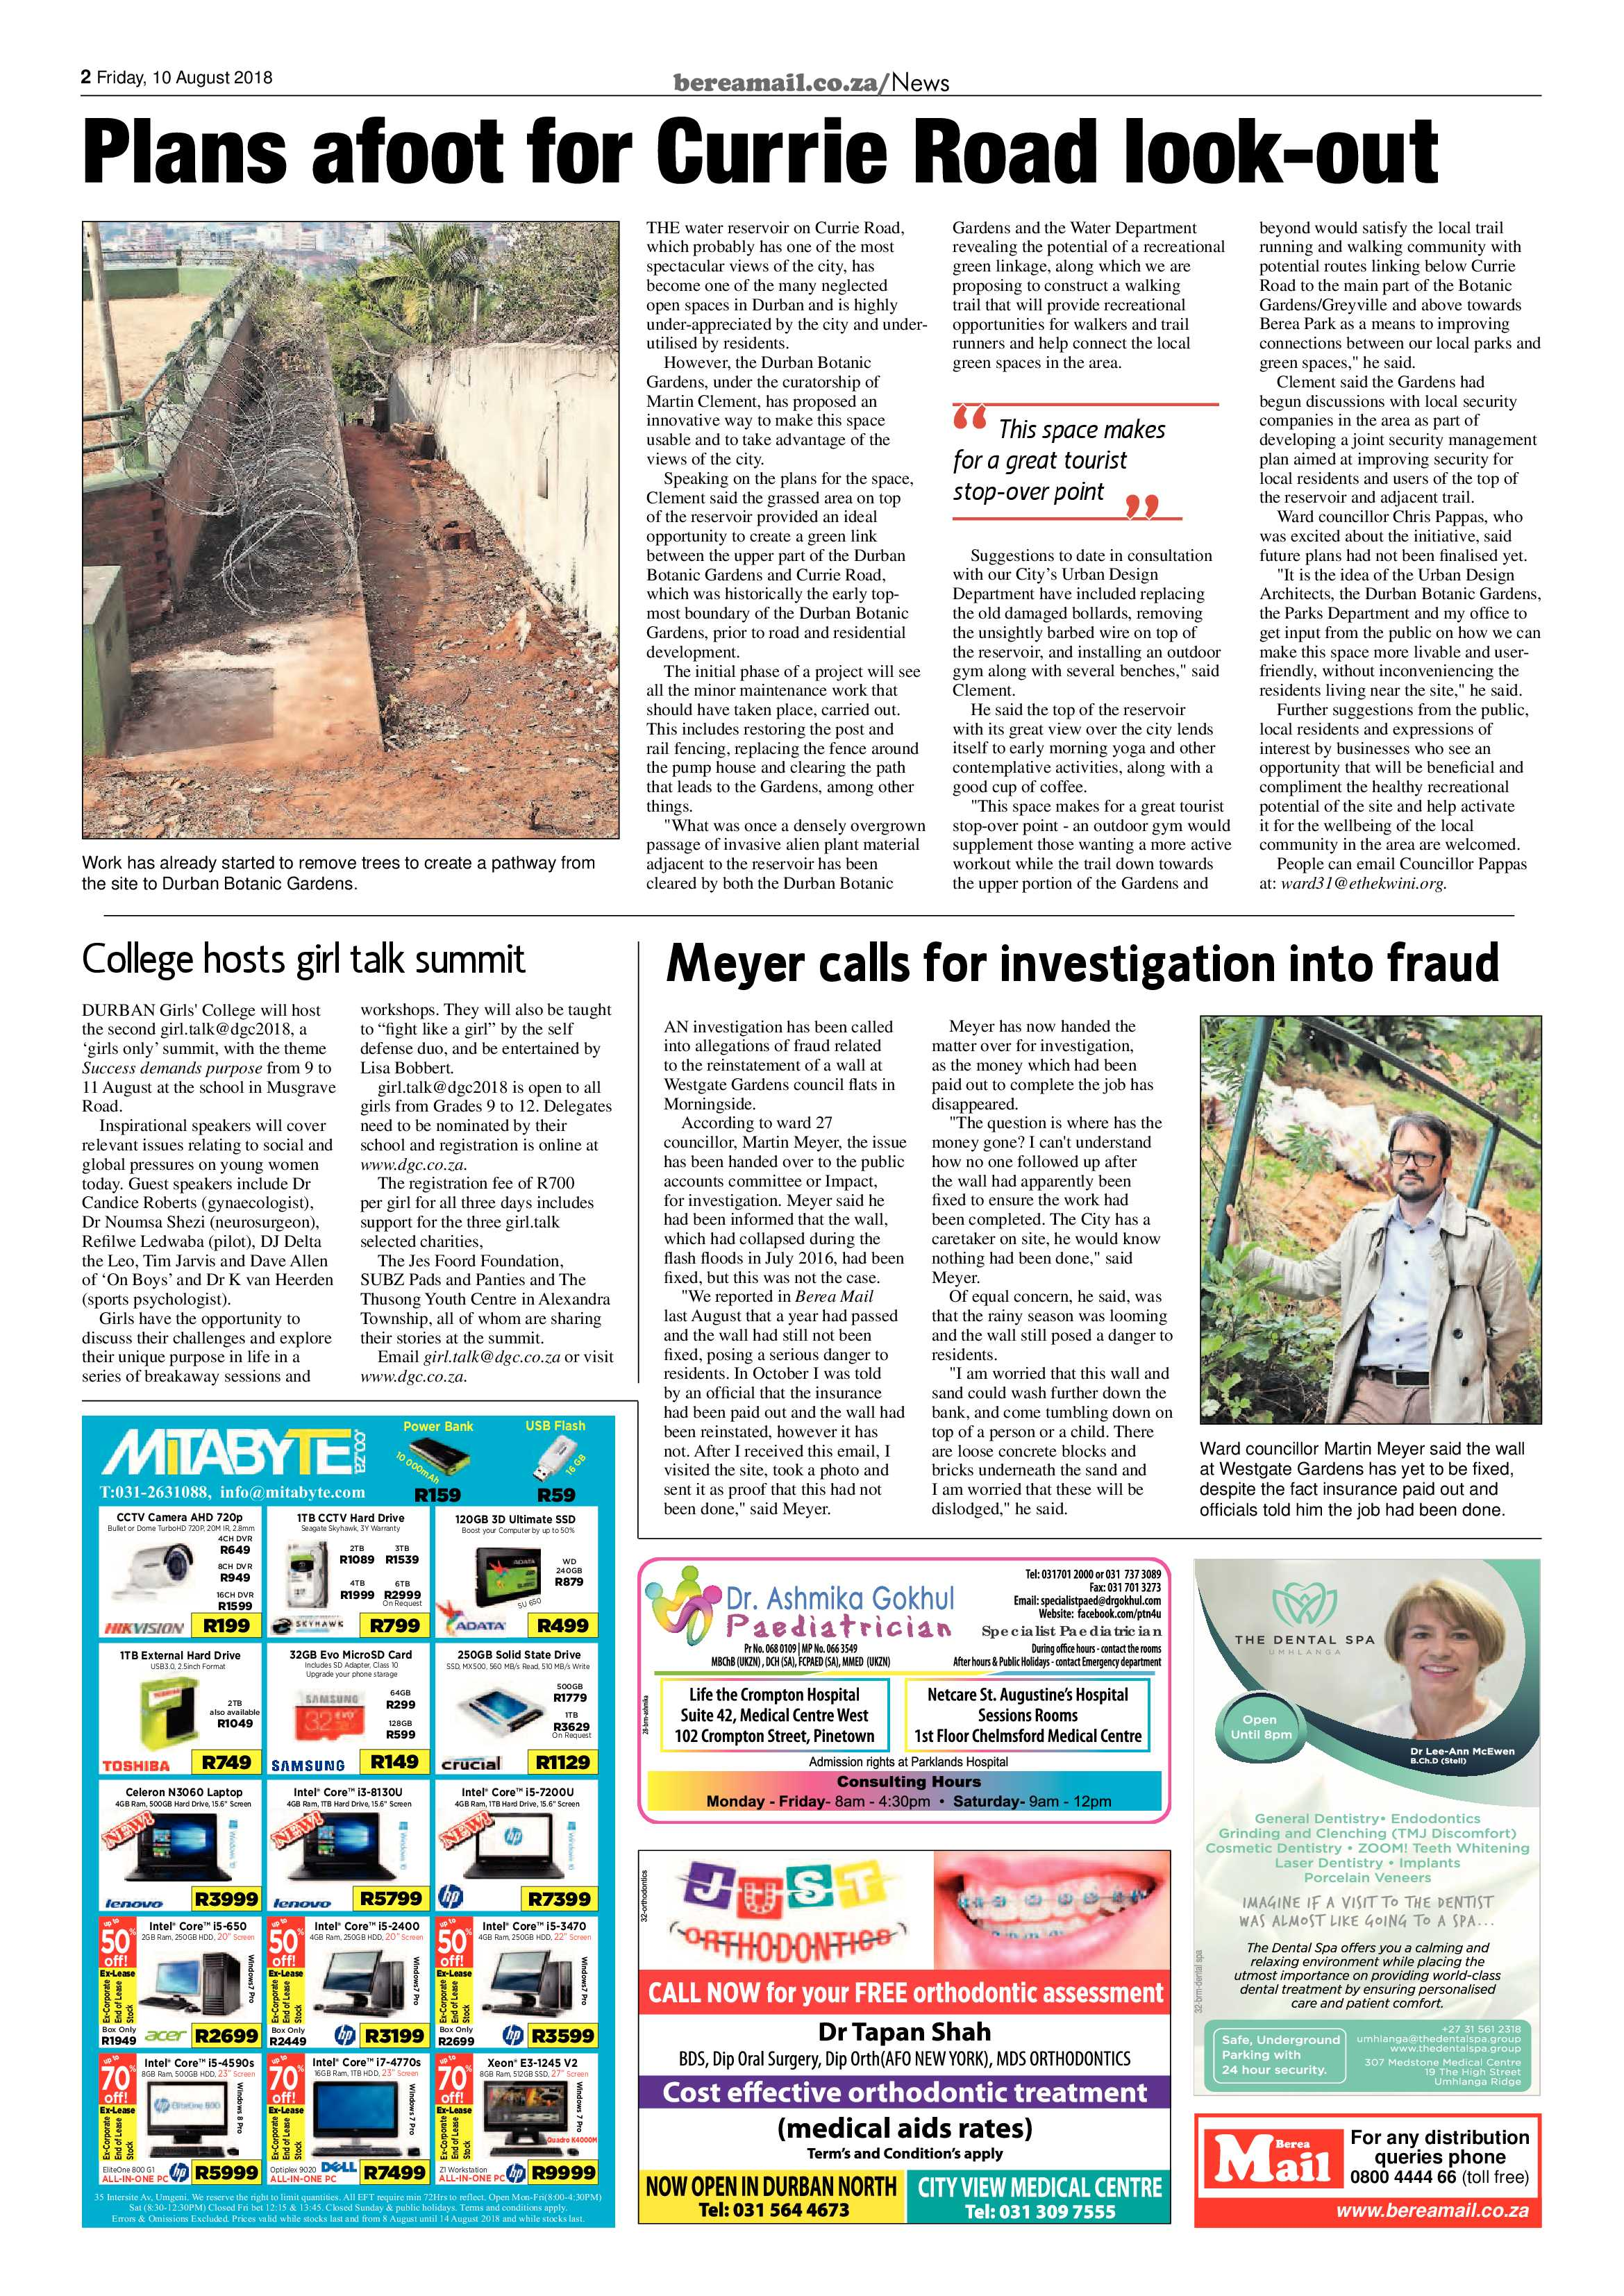 berea-mail-10-august-2018-epapers-page-2